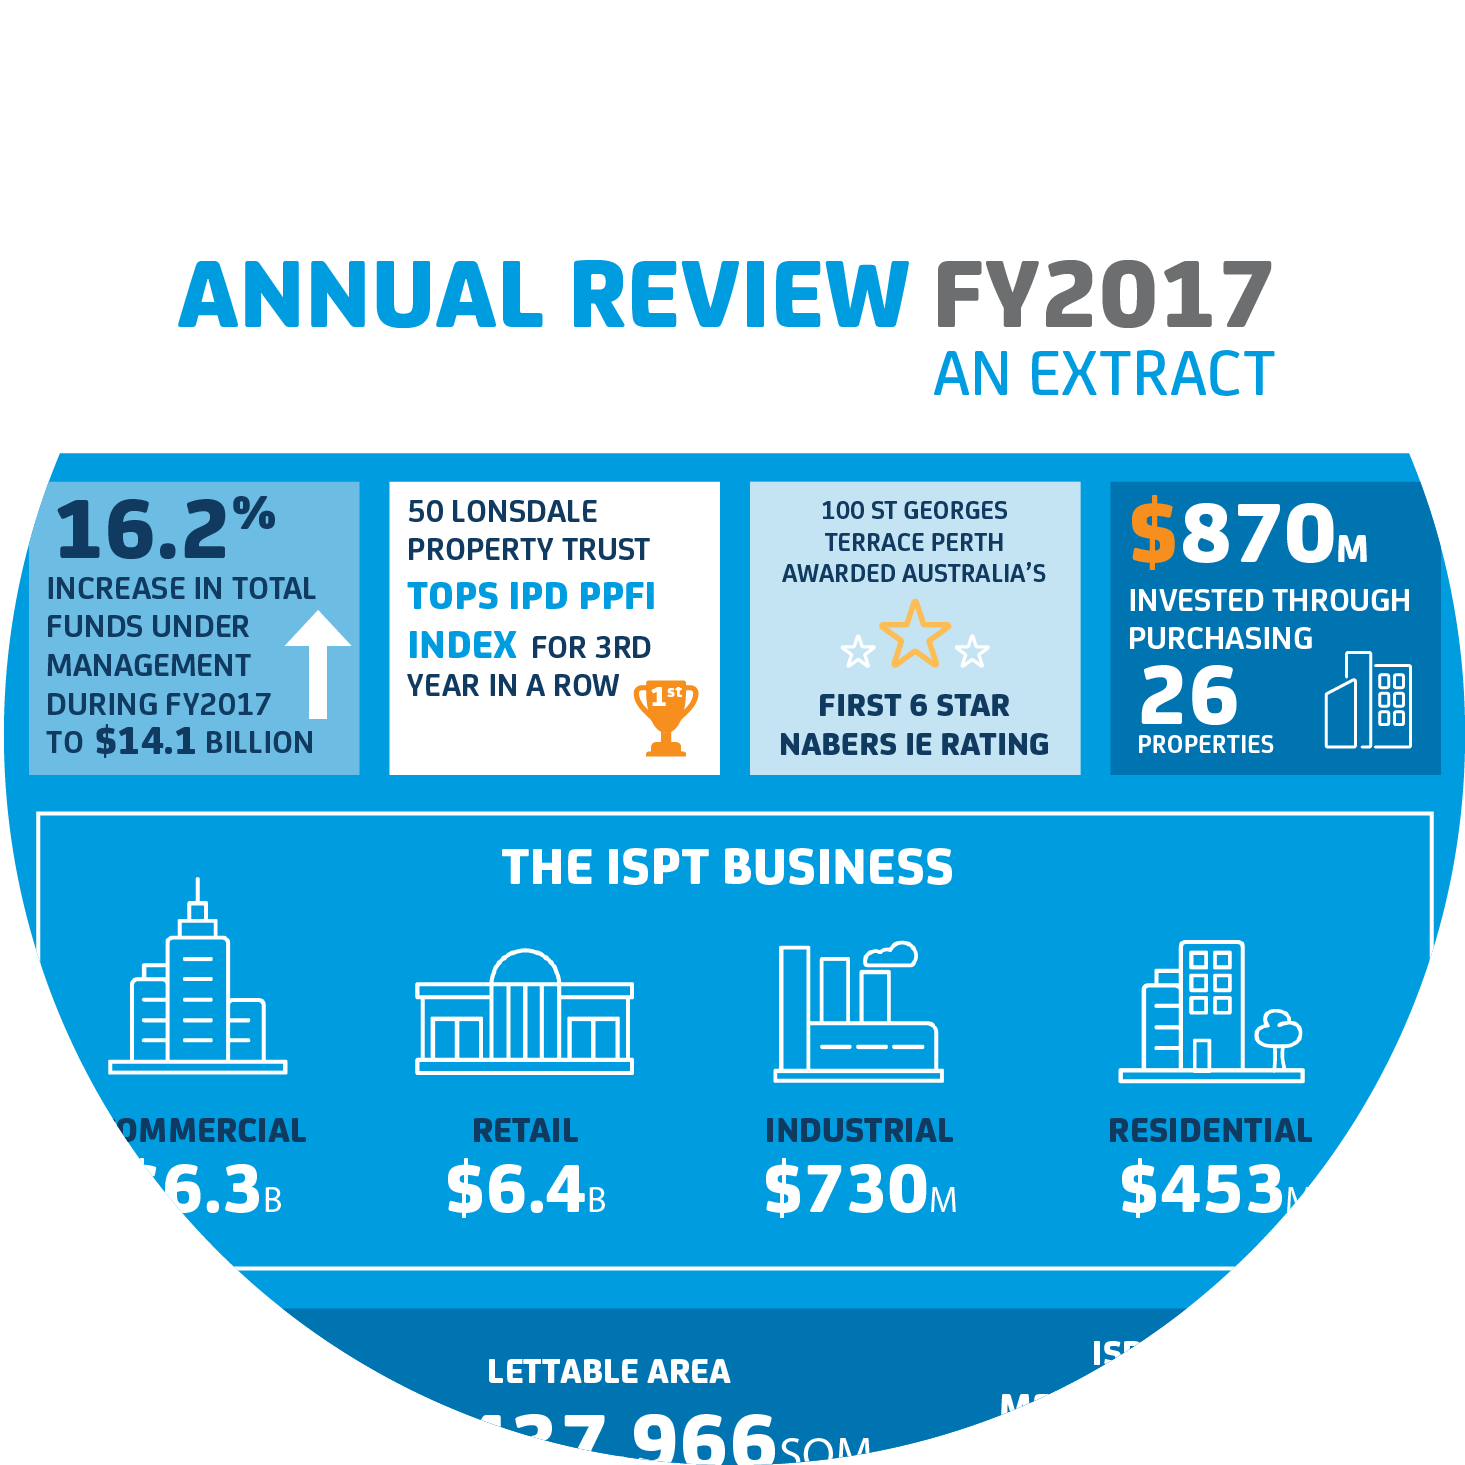 FY2017 Annual Review Extract